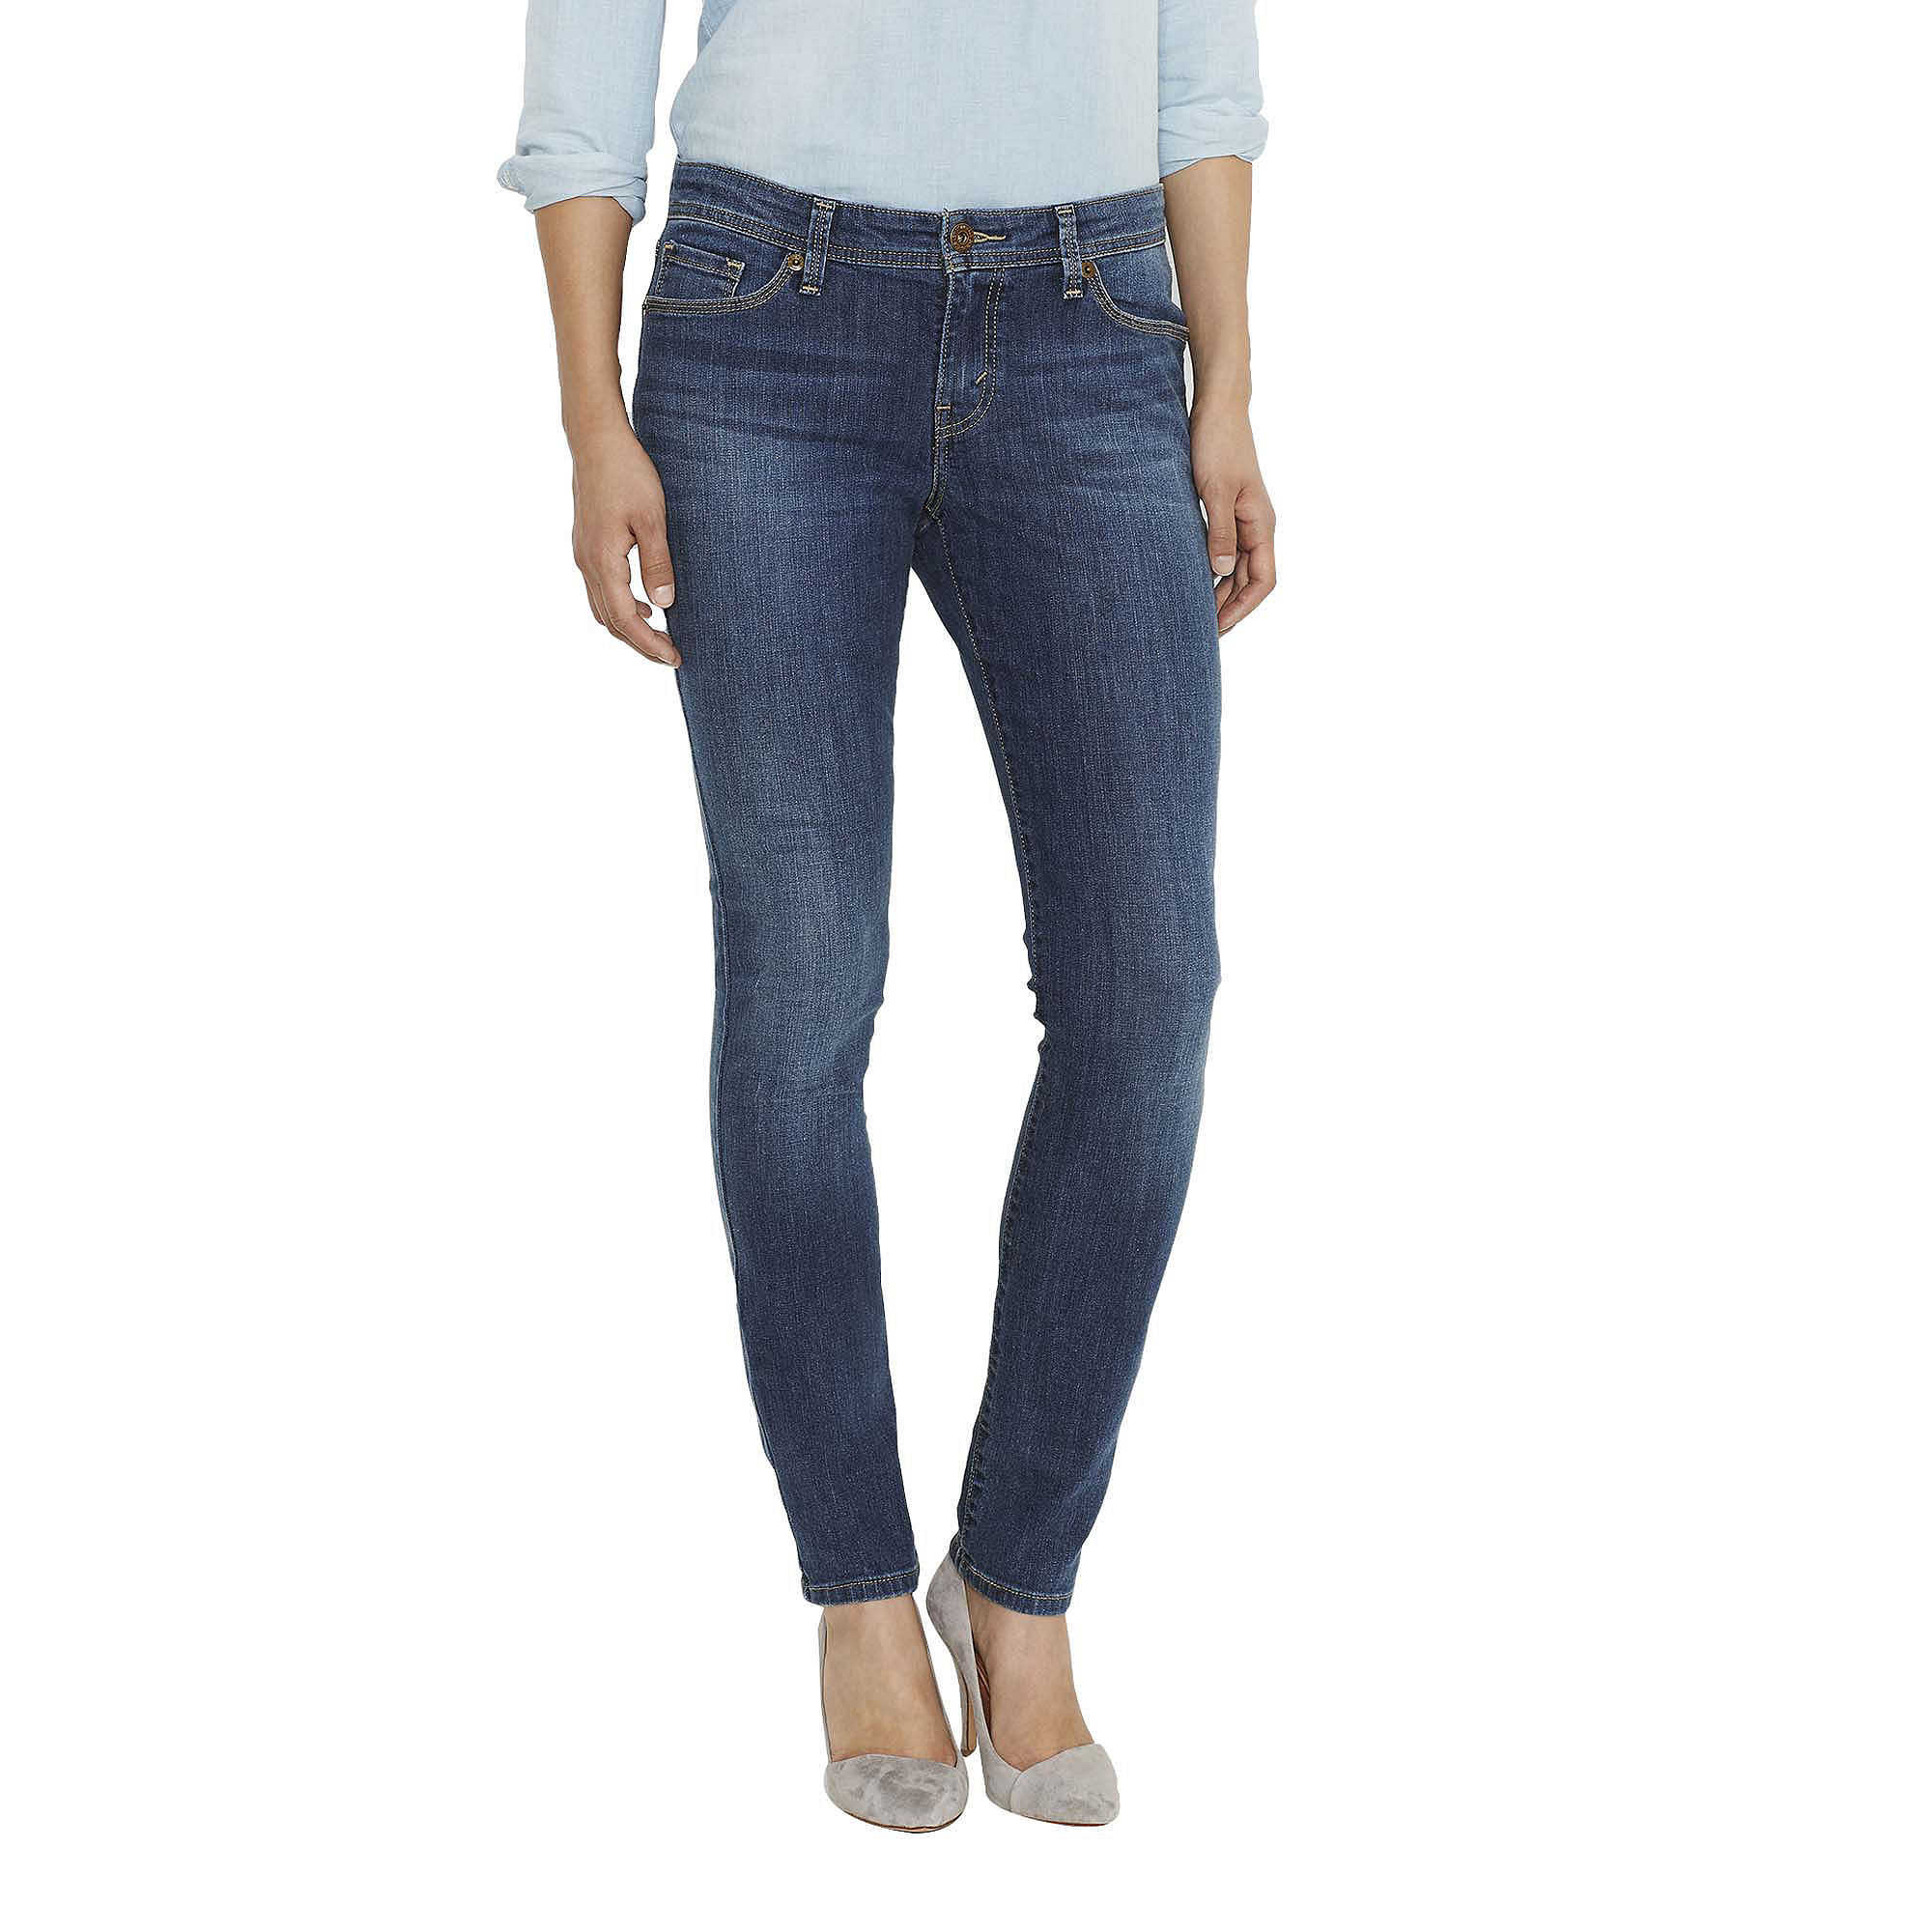 "Levis 529"" Curvy Skinny Jeans"